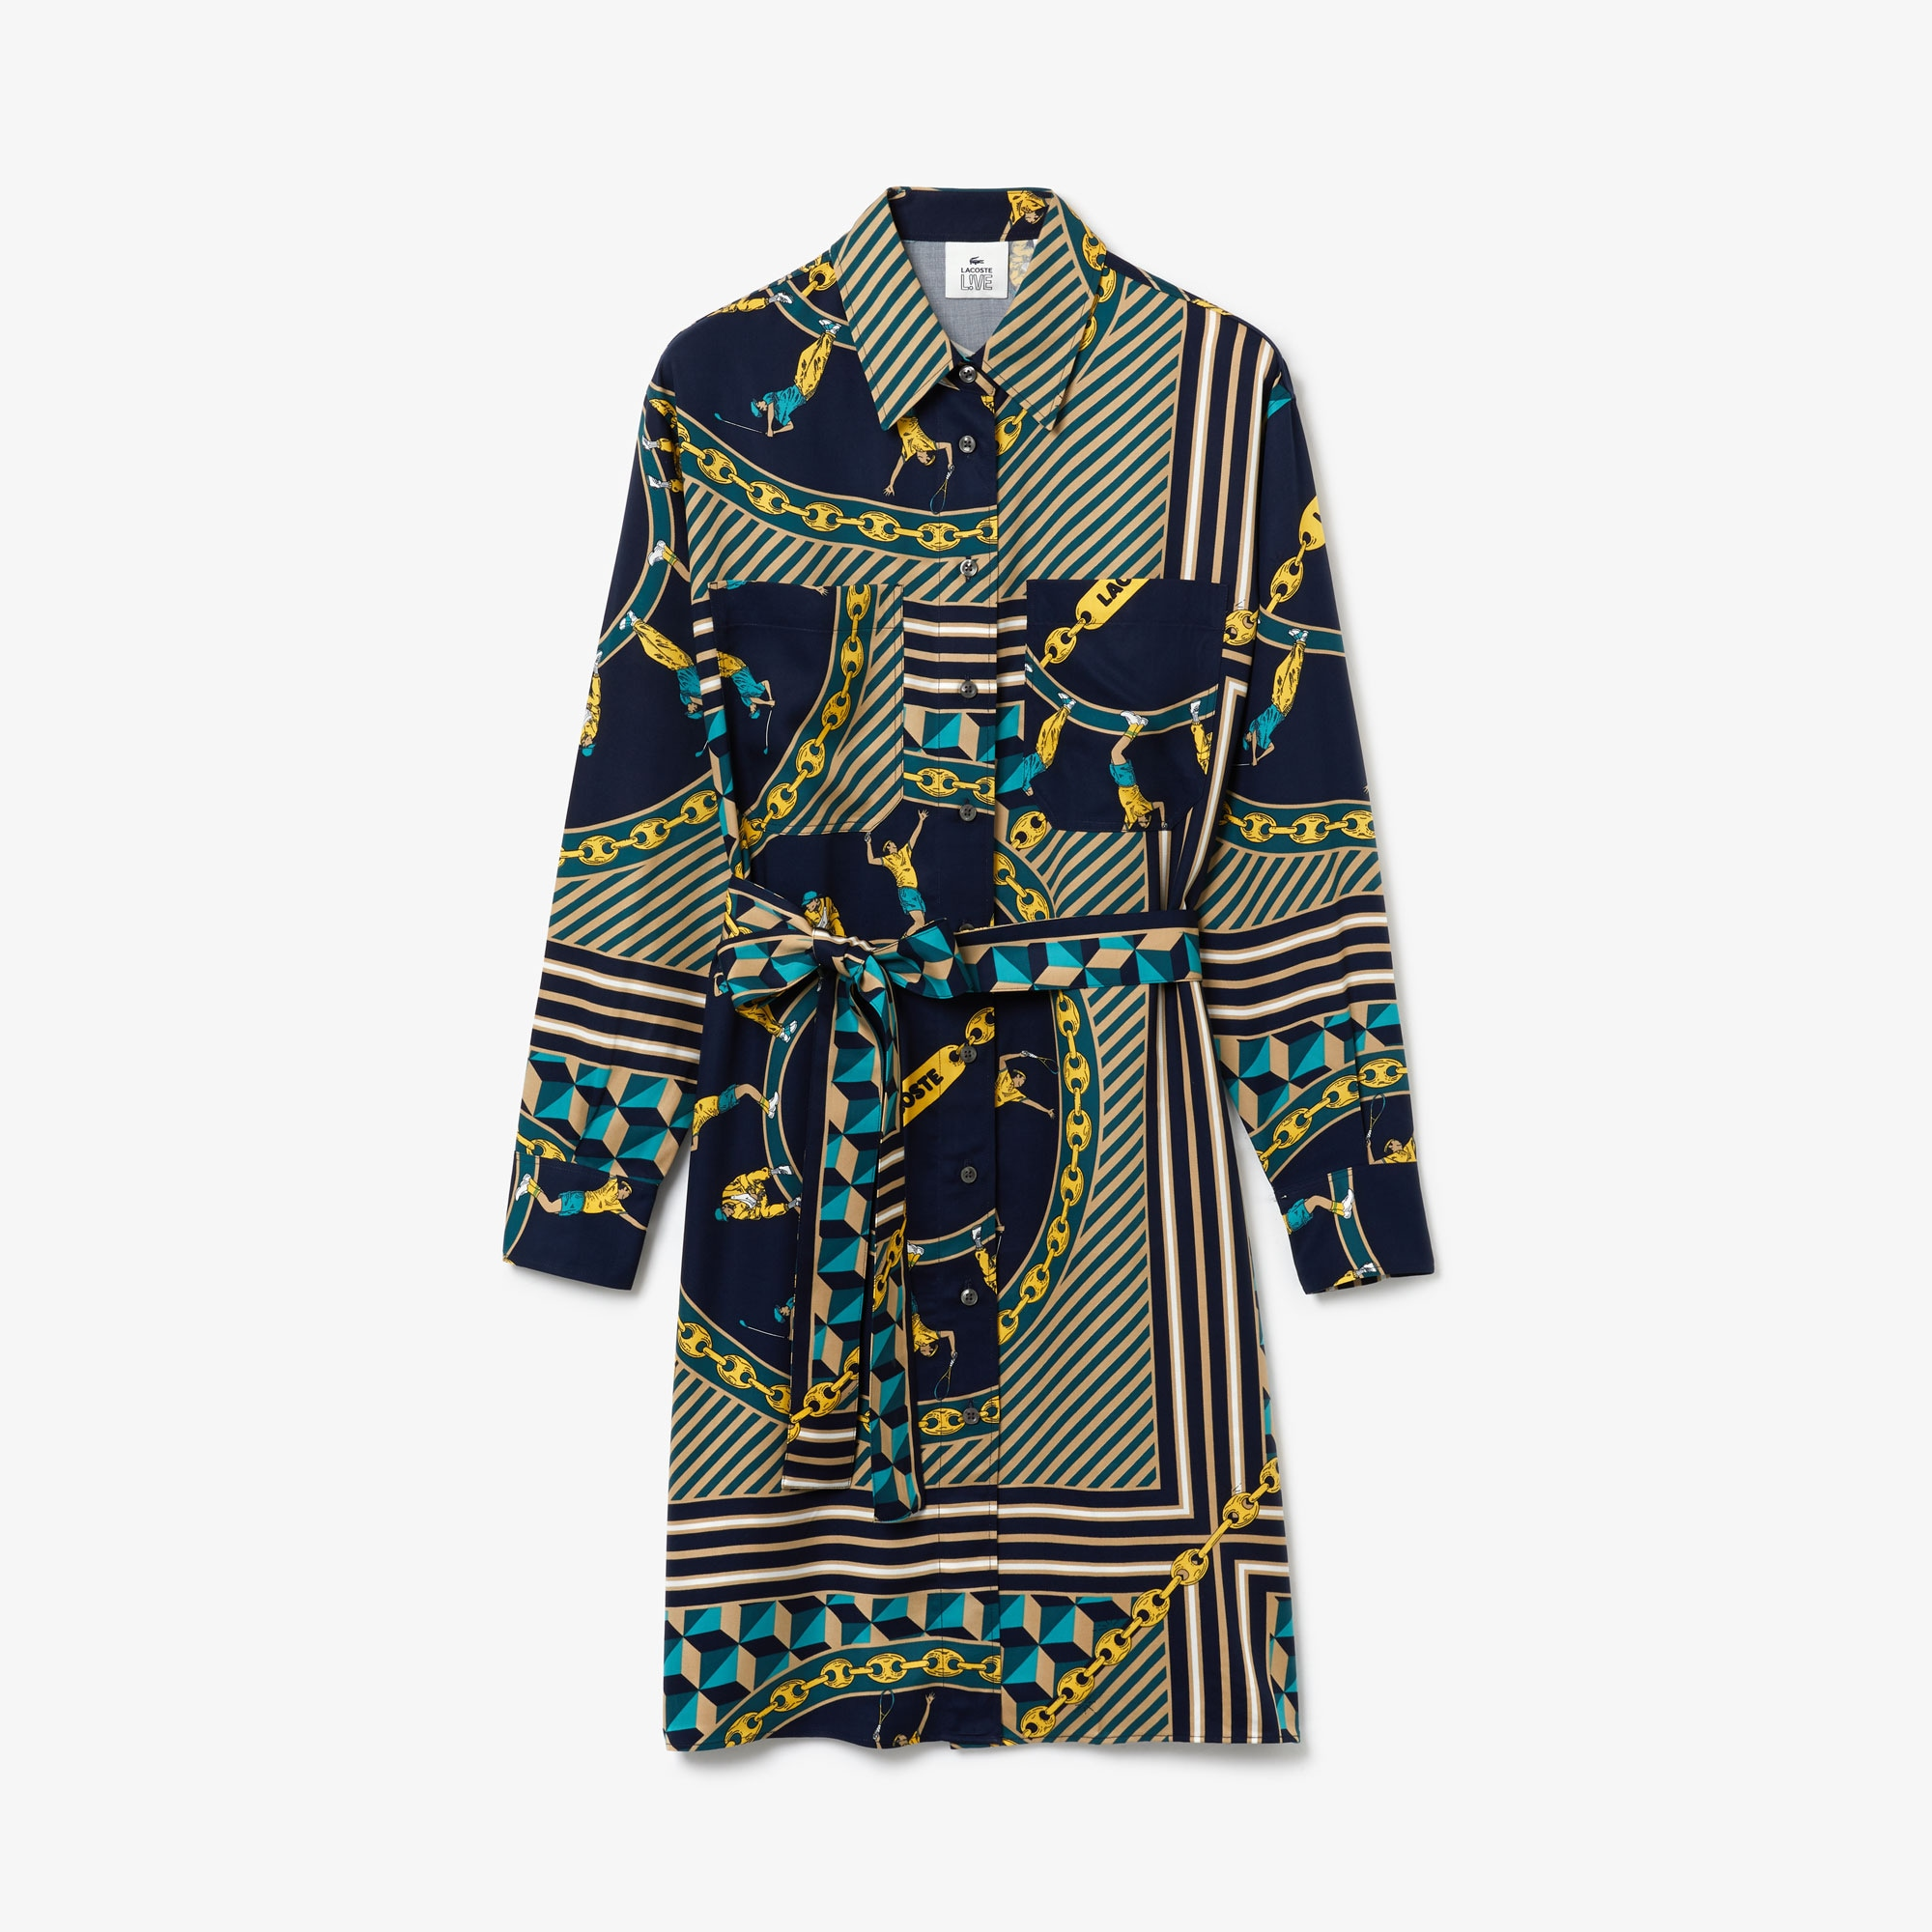 Women's Lacoste LIVE Scarf Print Shirt Dress